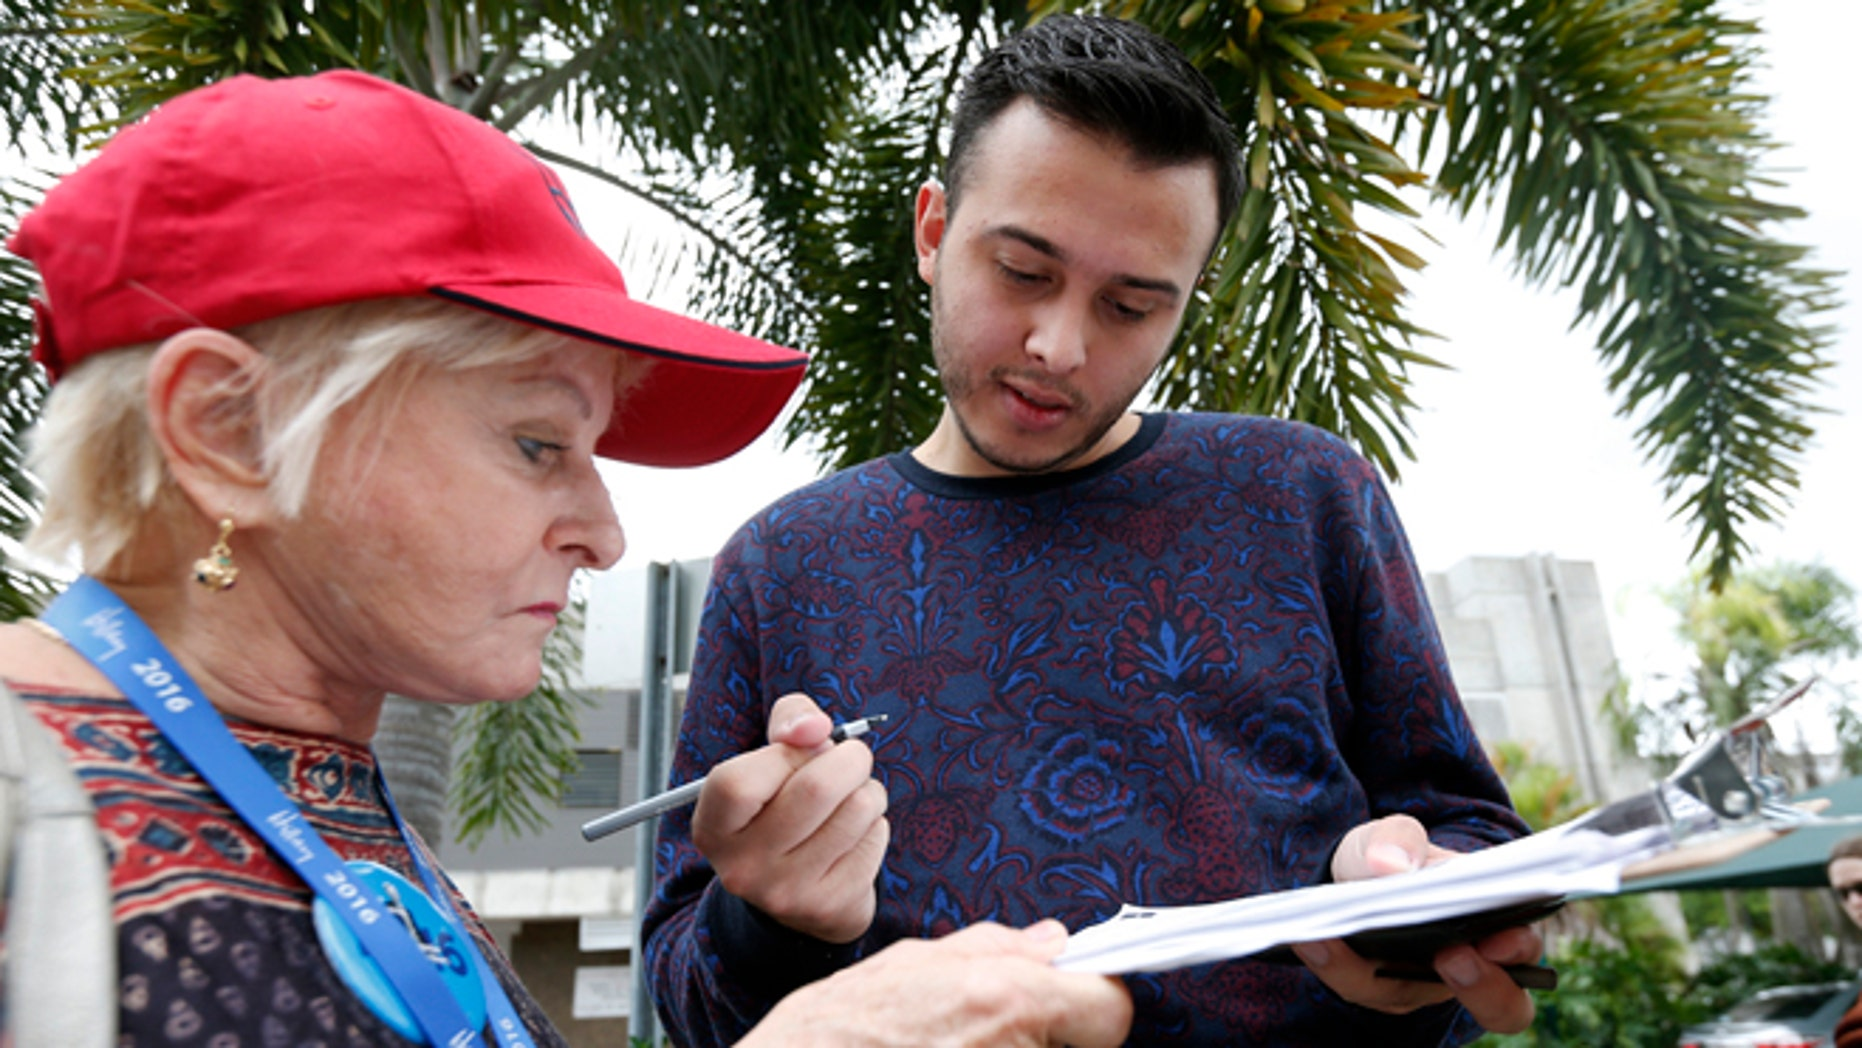 Volunteer Sandi Strickland, left, helps Roman Rodriguez, right, fill out a new voter registration form because of a change of address, as he waits in line to attend a rally for Democratic presidential candidate Hillary Clinton and former vice president Al Gore, Tuesday, Oct. 11, 2016, in Miami. A federal judge has given Democrats a partial victory in the presidential battleground of Florida, extending the state's voter registration deadline one day and agreeing to consider a longer extension in the wake of Hurricane Matthew. (AP Photo/Wilfredo Lee)